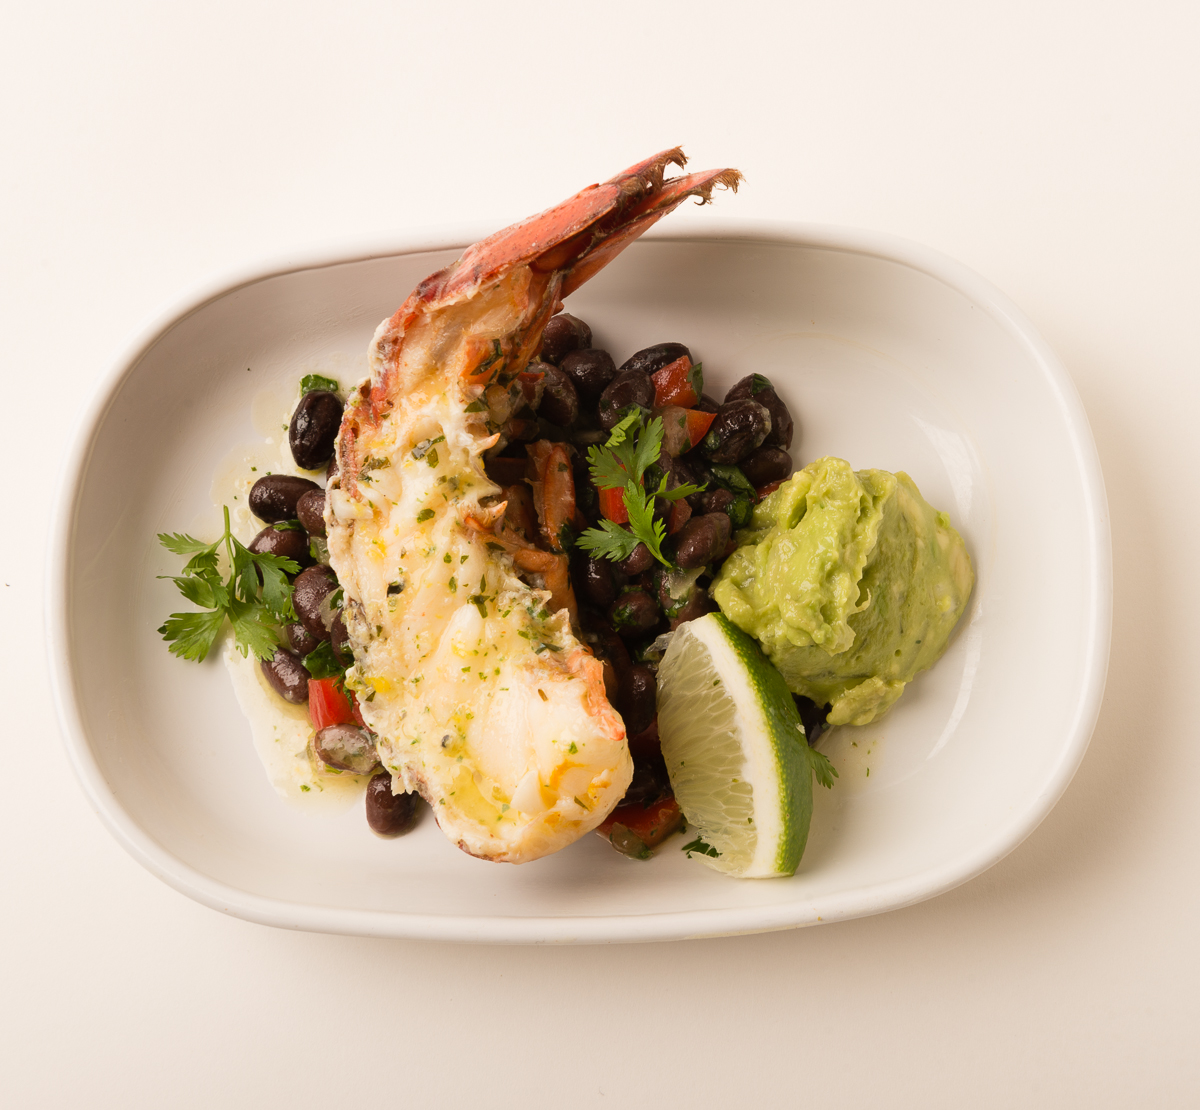 ABSOLUTELY LOBSTER® SOUTHWEST STYLE   Serve any flavor Absolutely Lobster® tail with some seasoned black beans, salsa, and guacamole for a mouth-watering Southwestern treat!